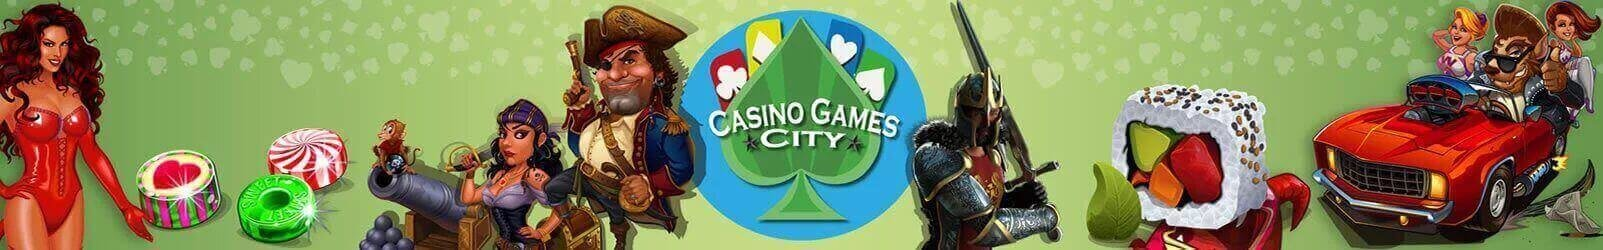 Casino Games City